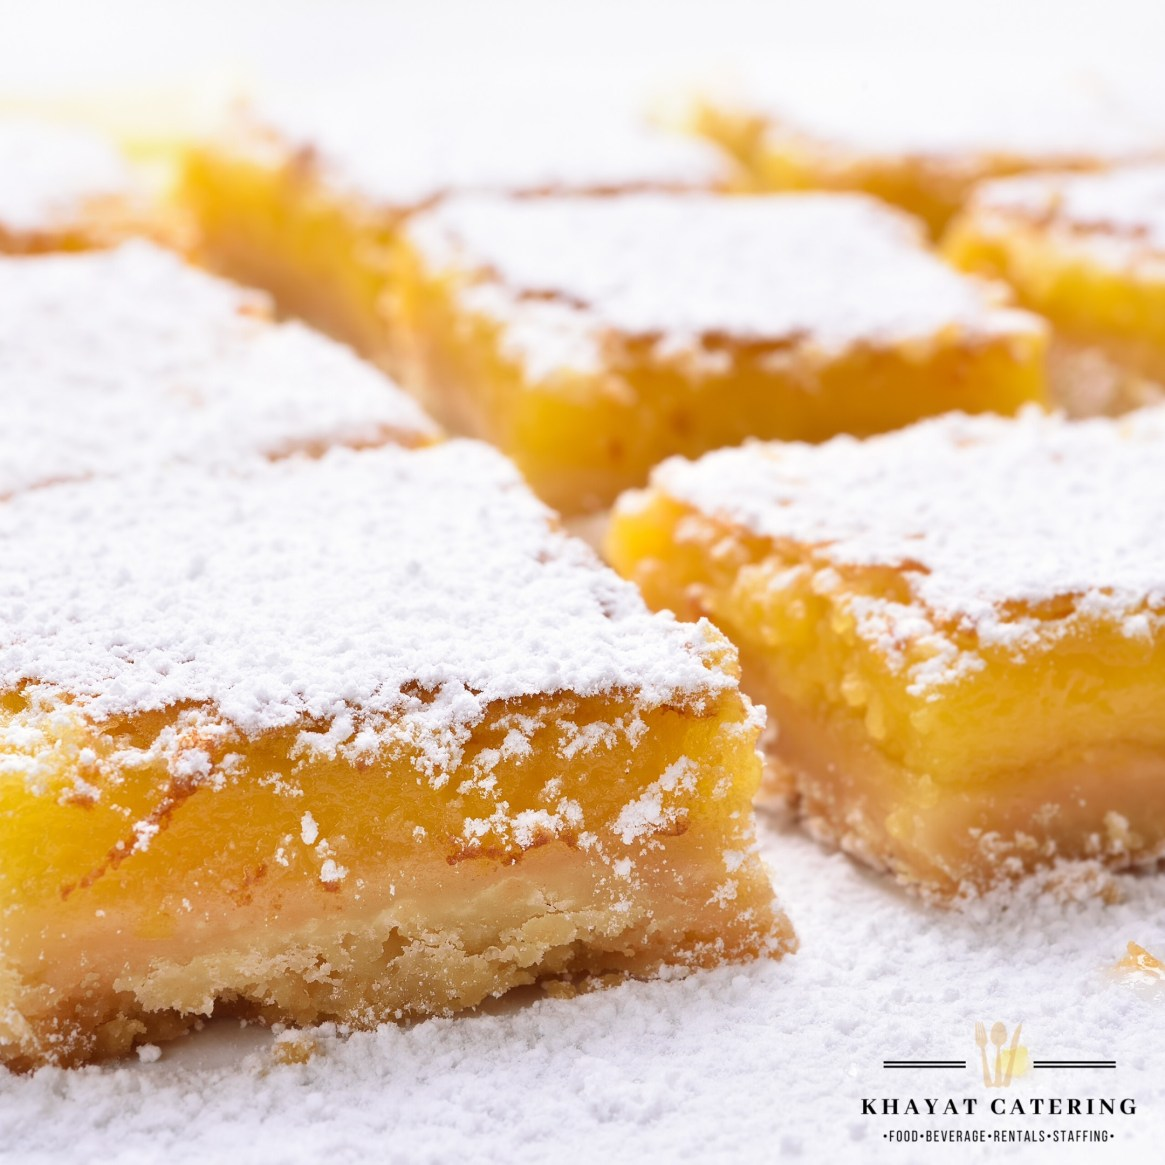 Khayat Catering lemon bars